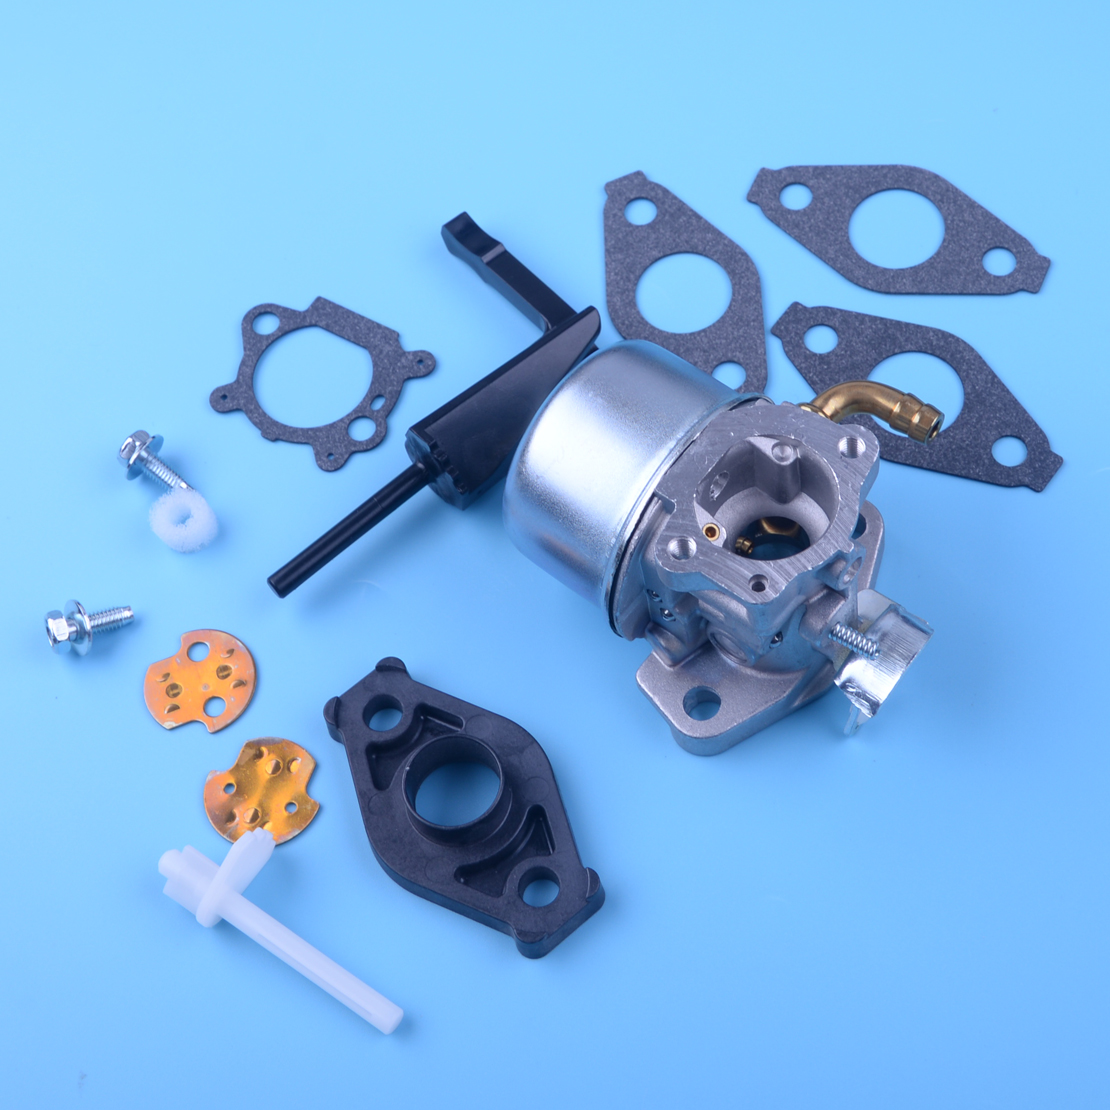 Letaosk 1pc Carb Carburetor Assembly Kit Fit For Briggs